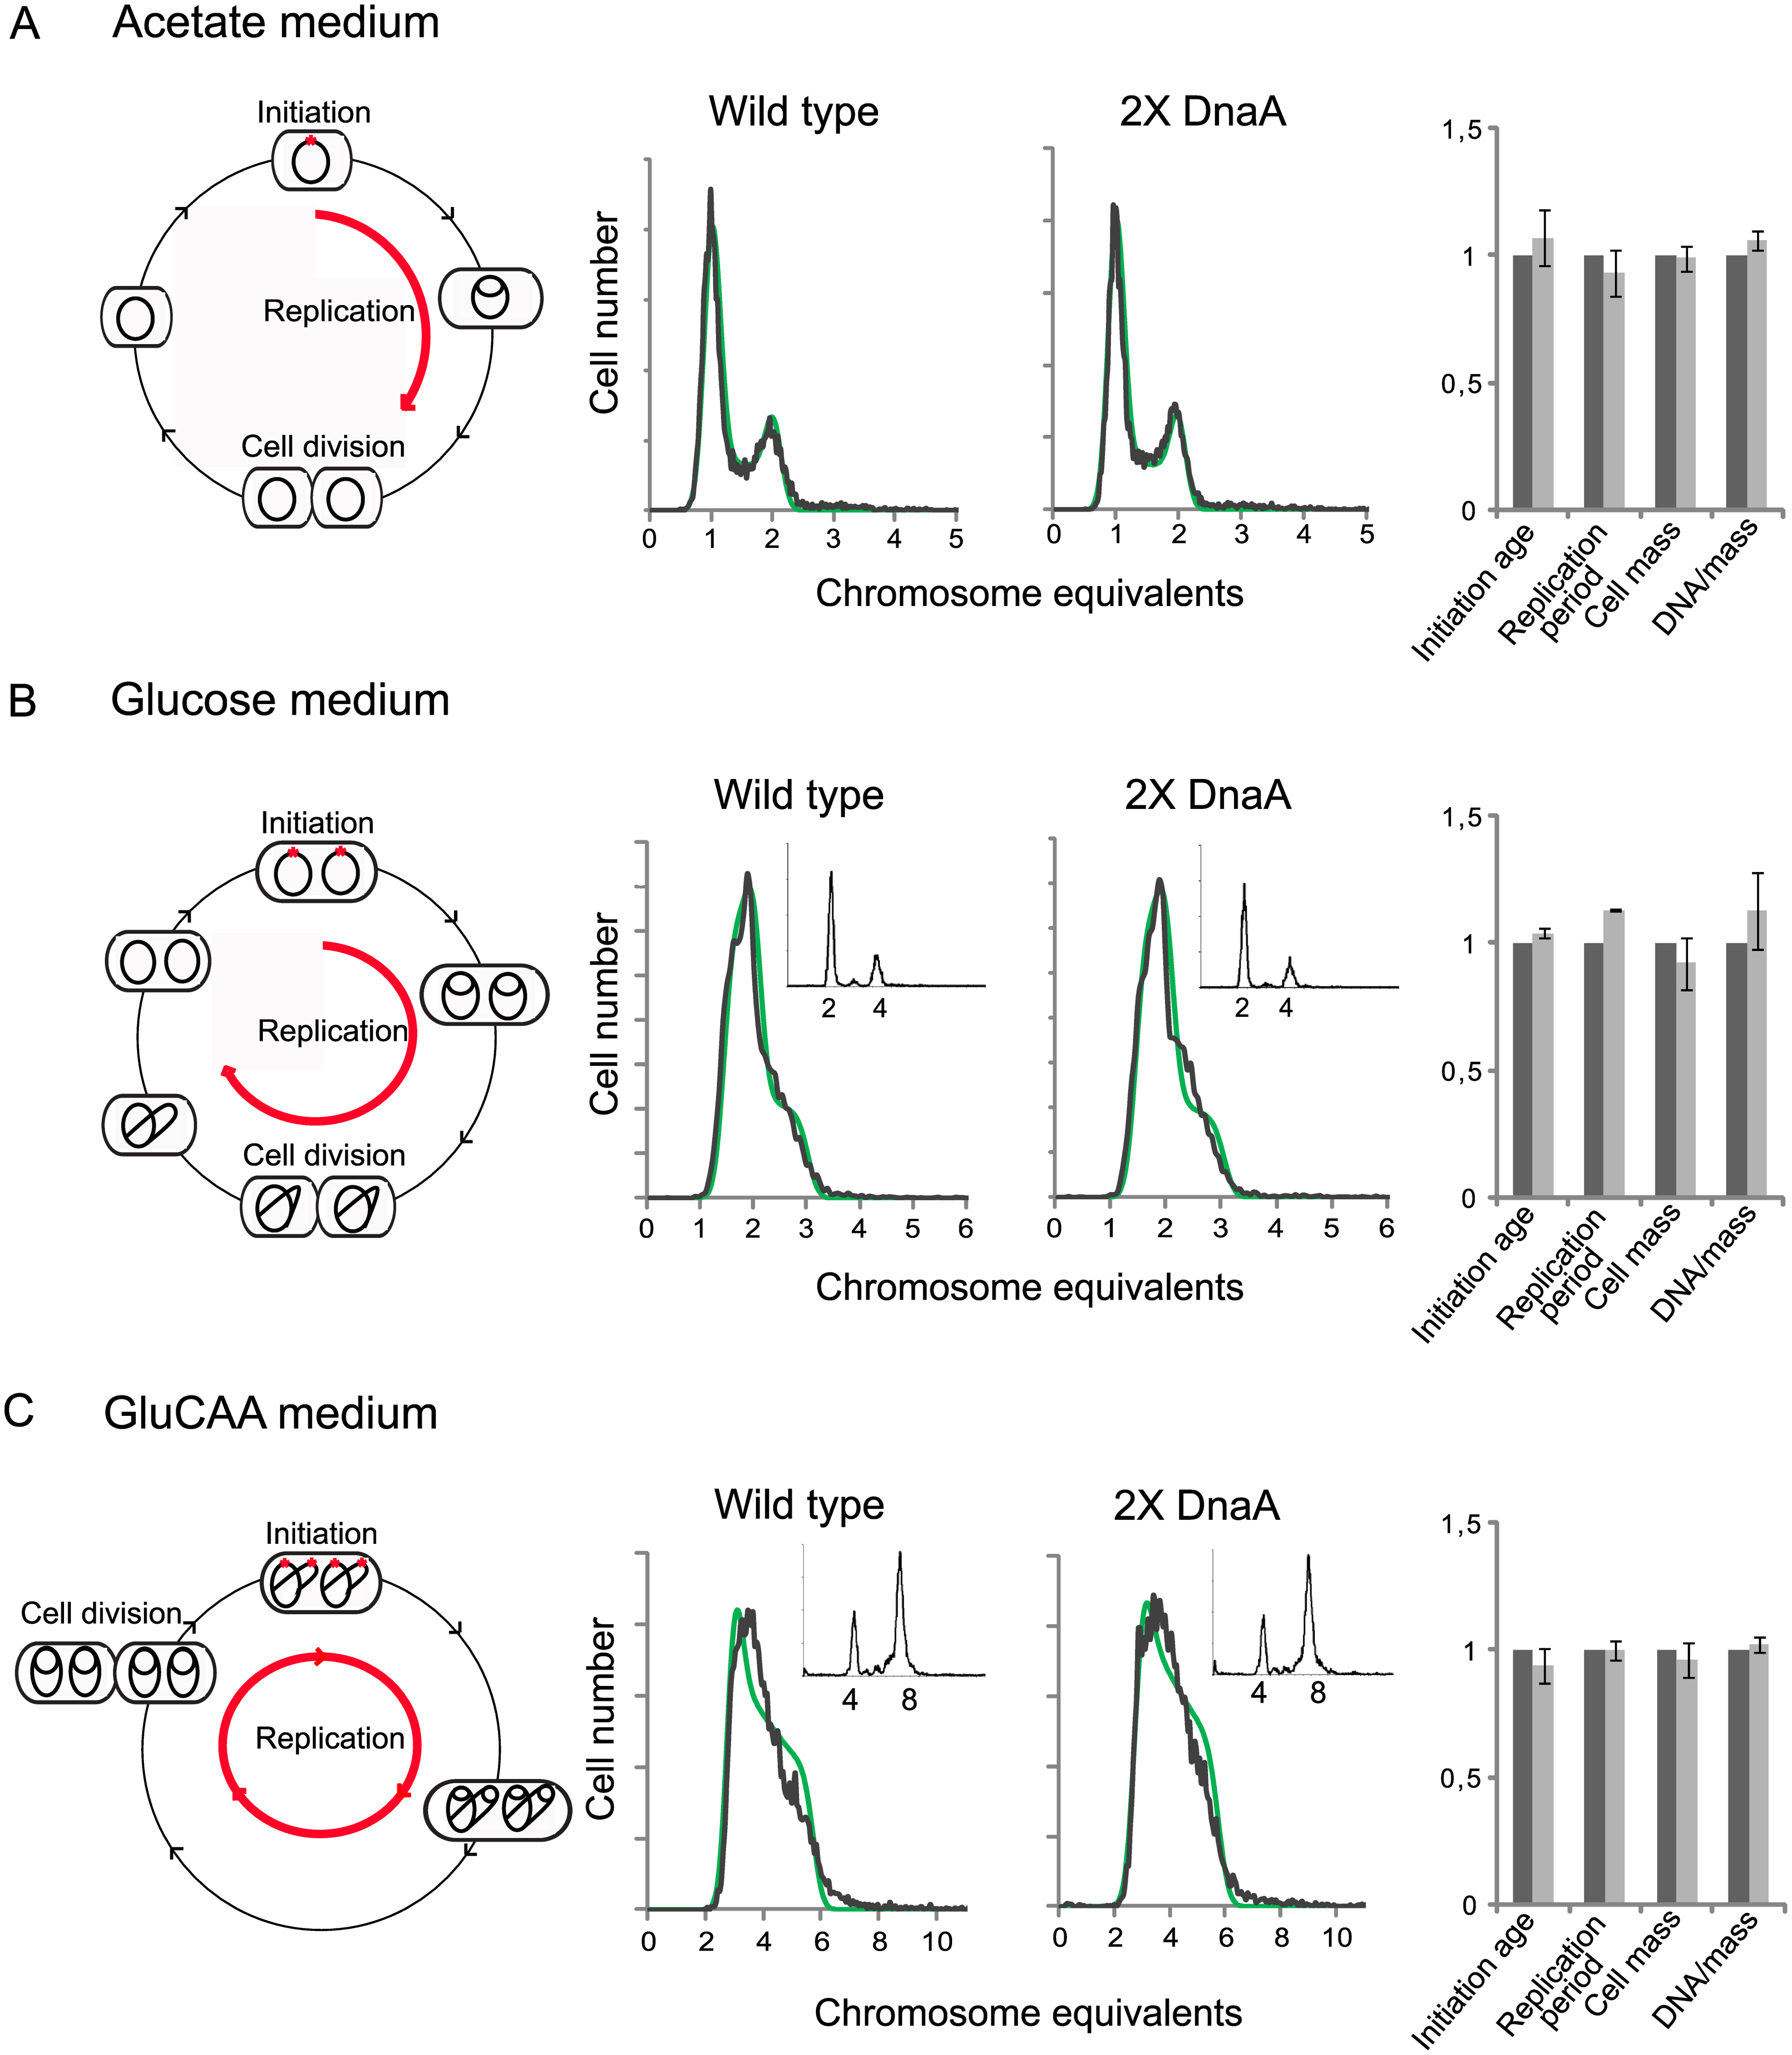 Cell cycle parameters are not changed in cells with a two-fold DnaA concentration.